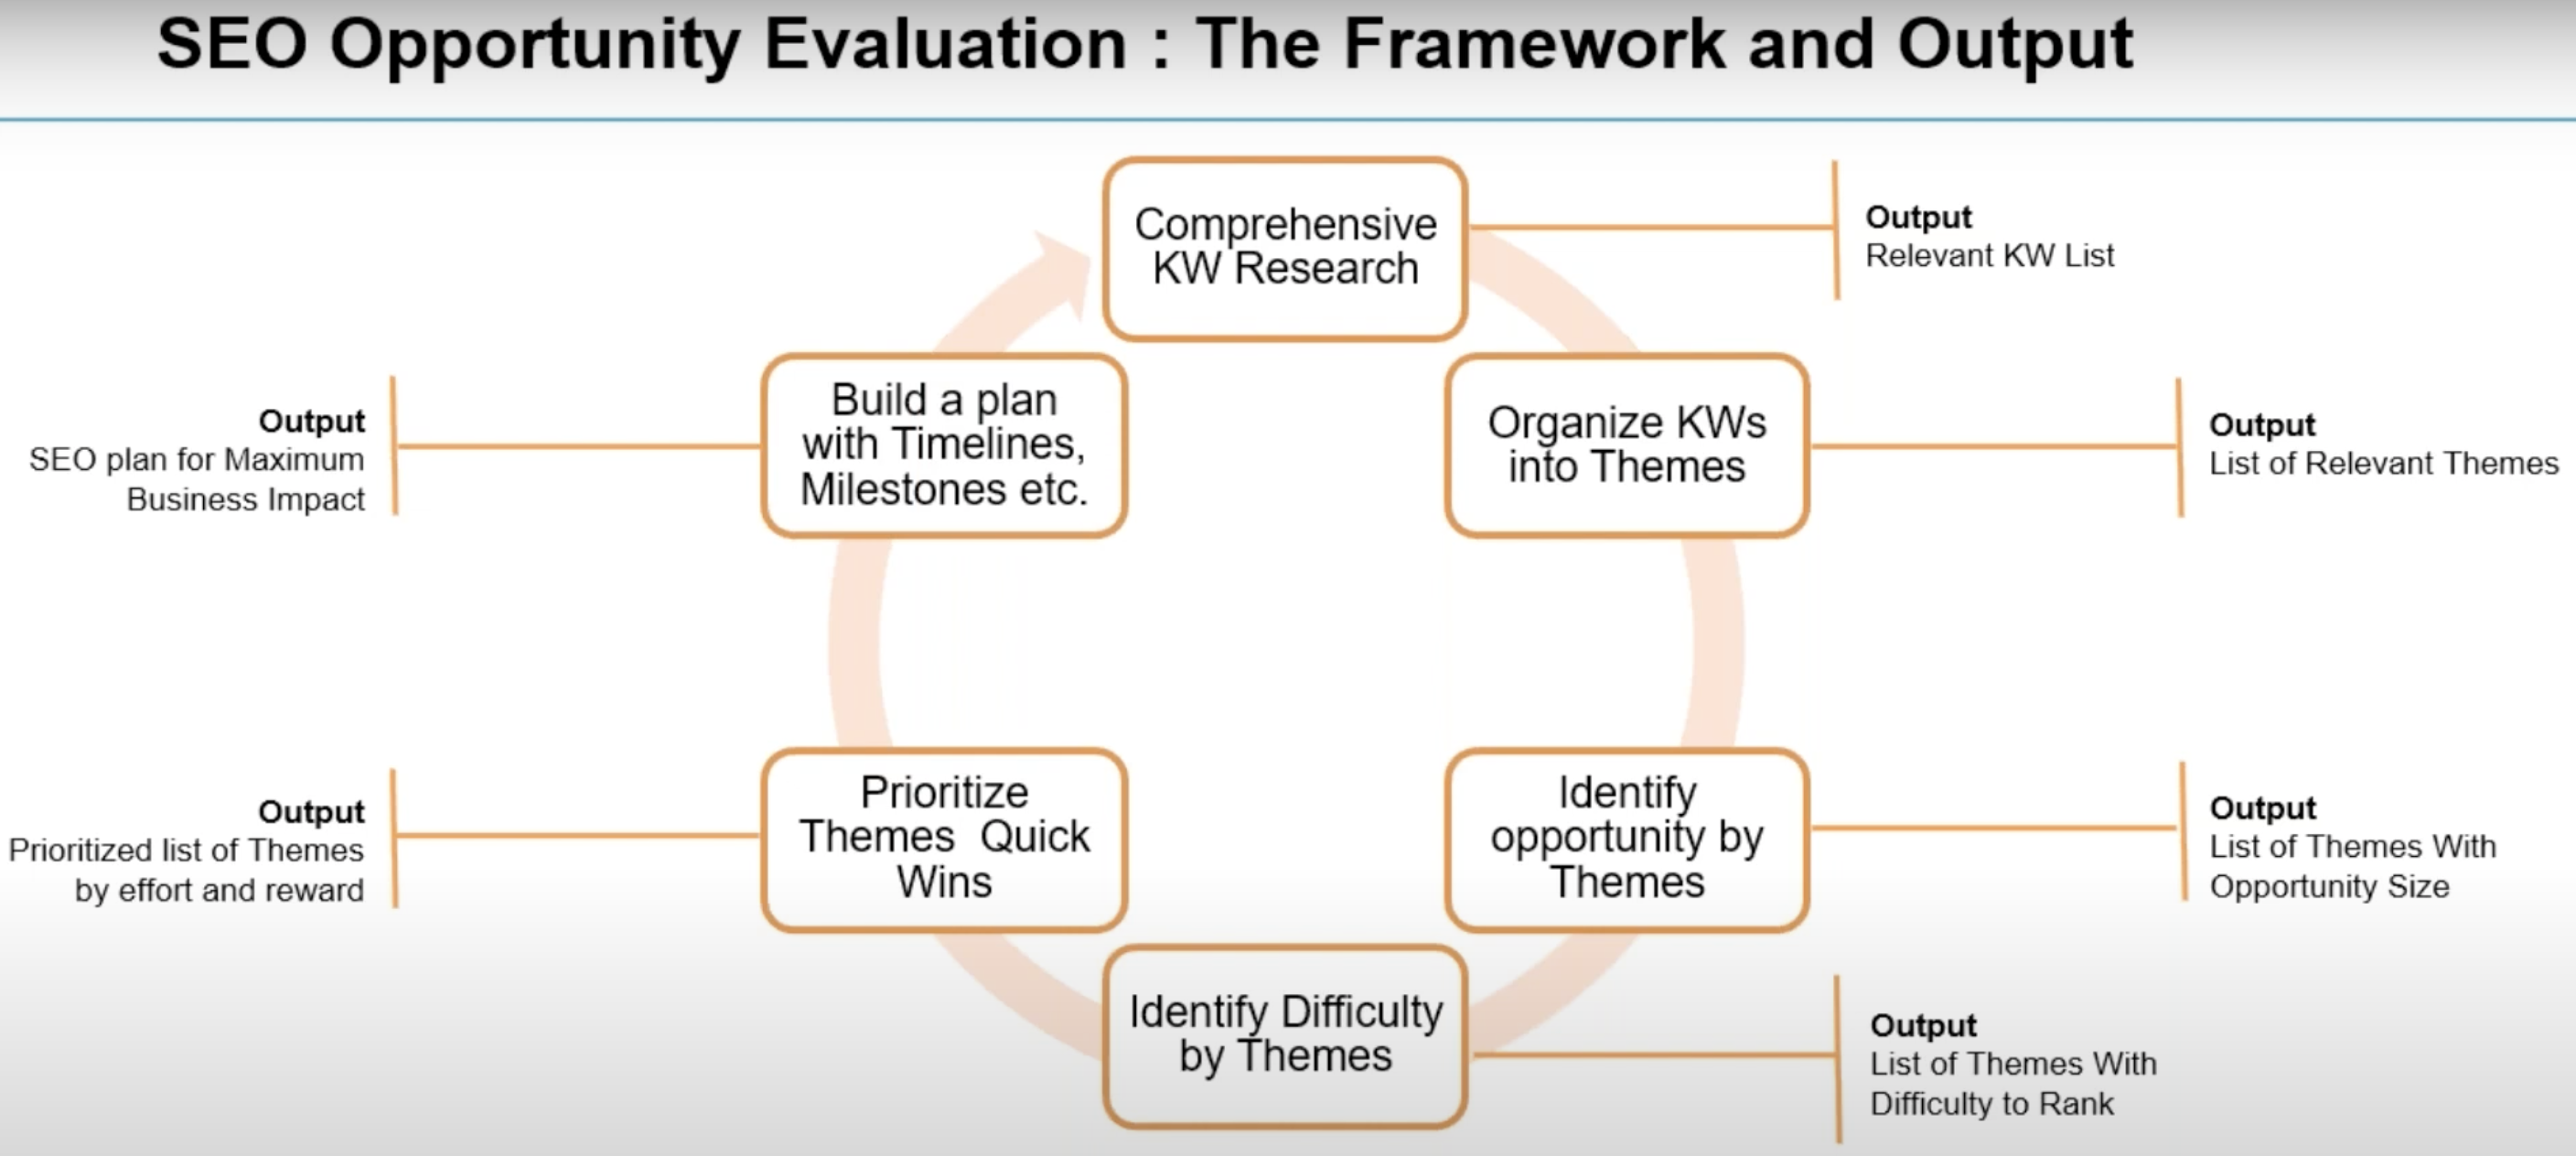 SEO Opportunity Evaluation